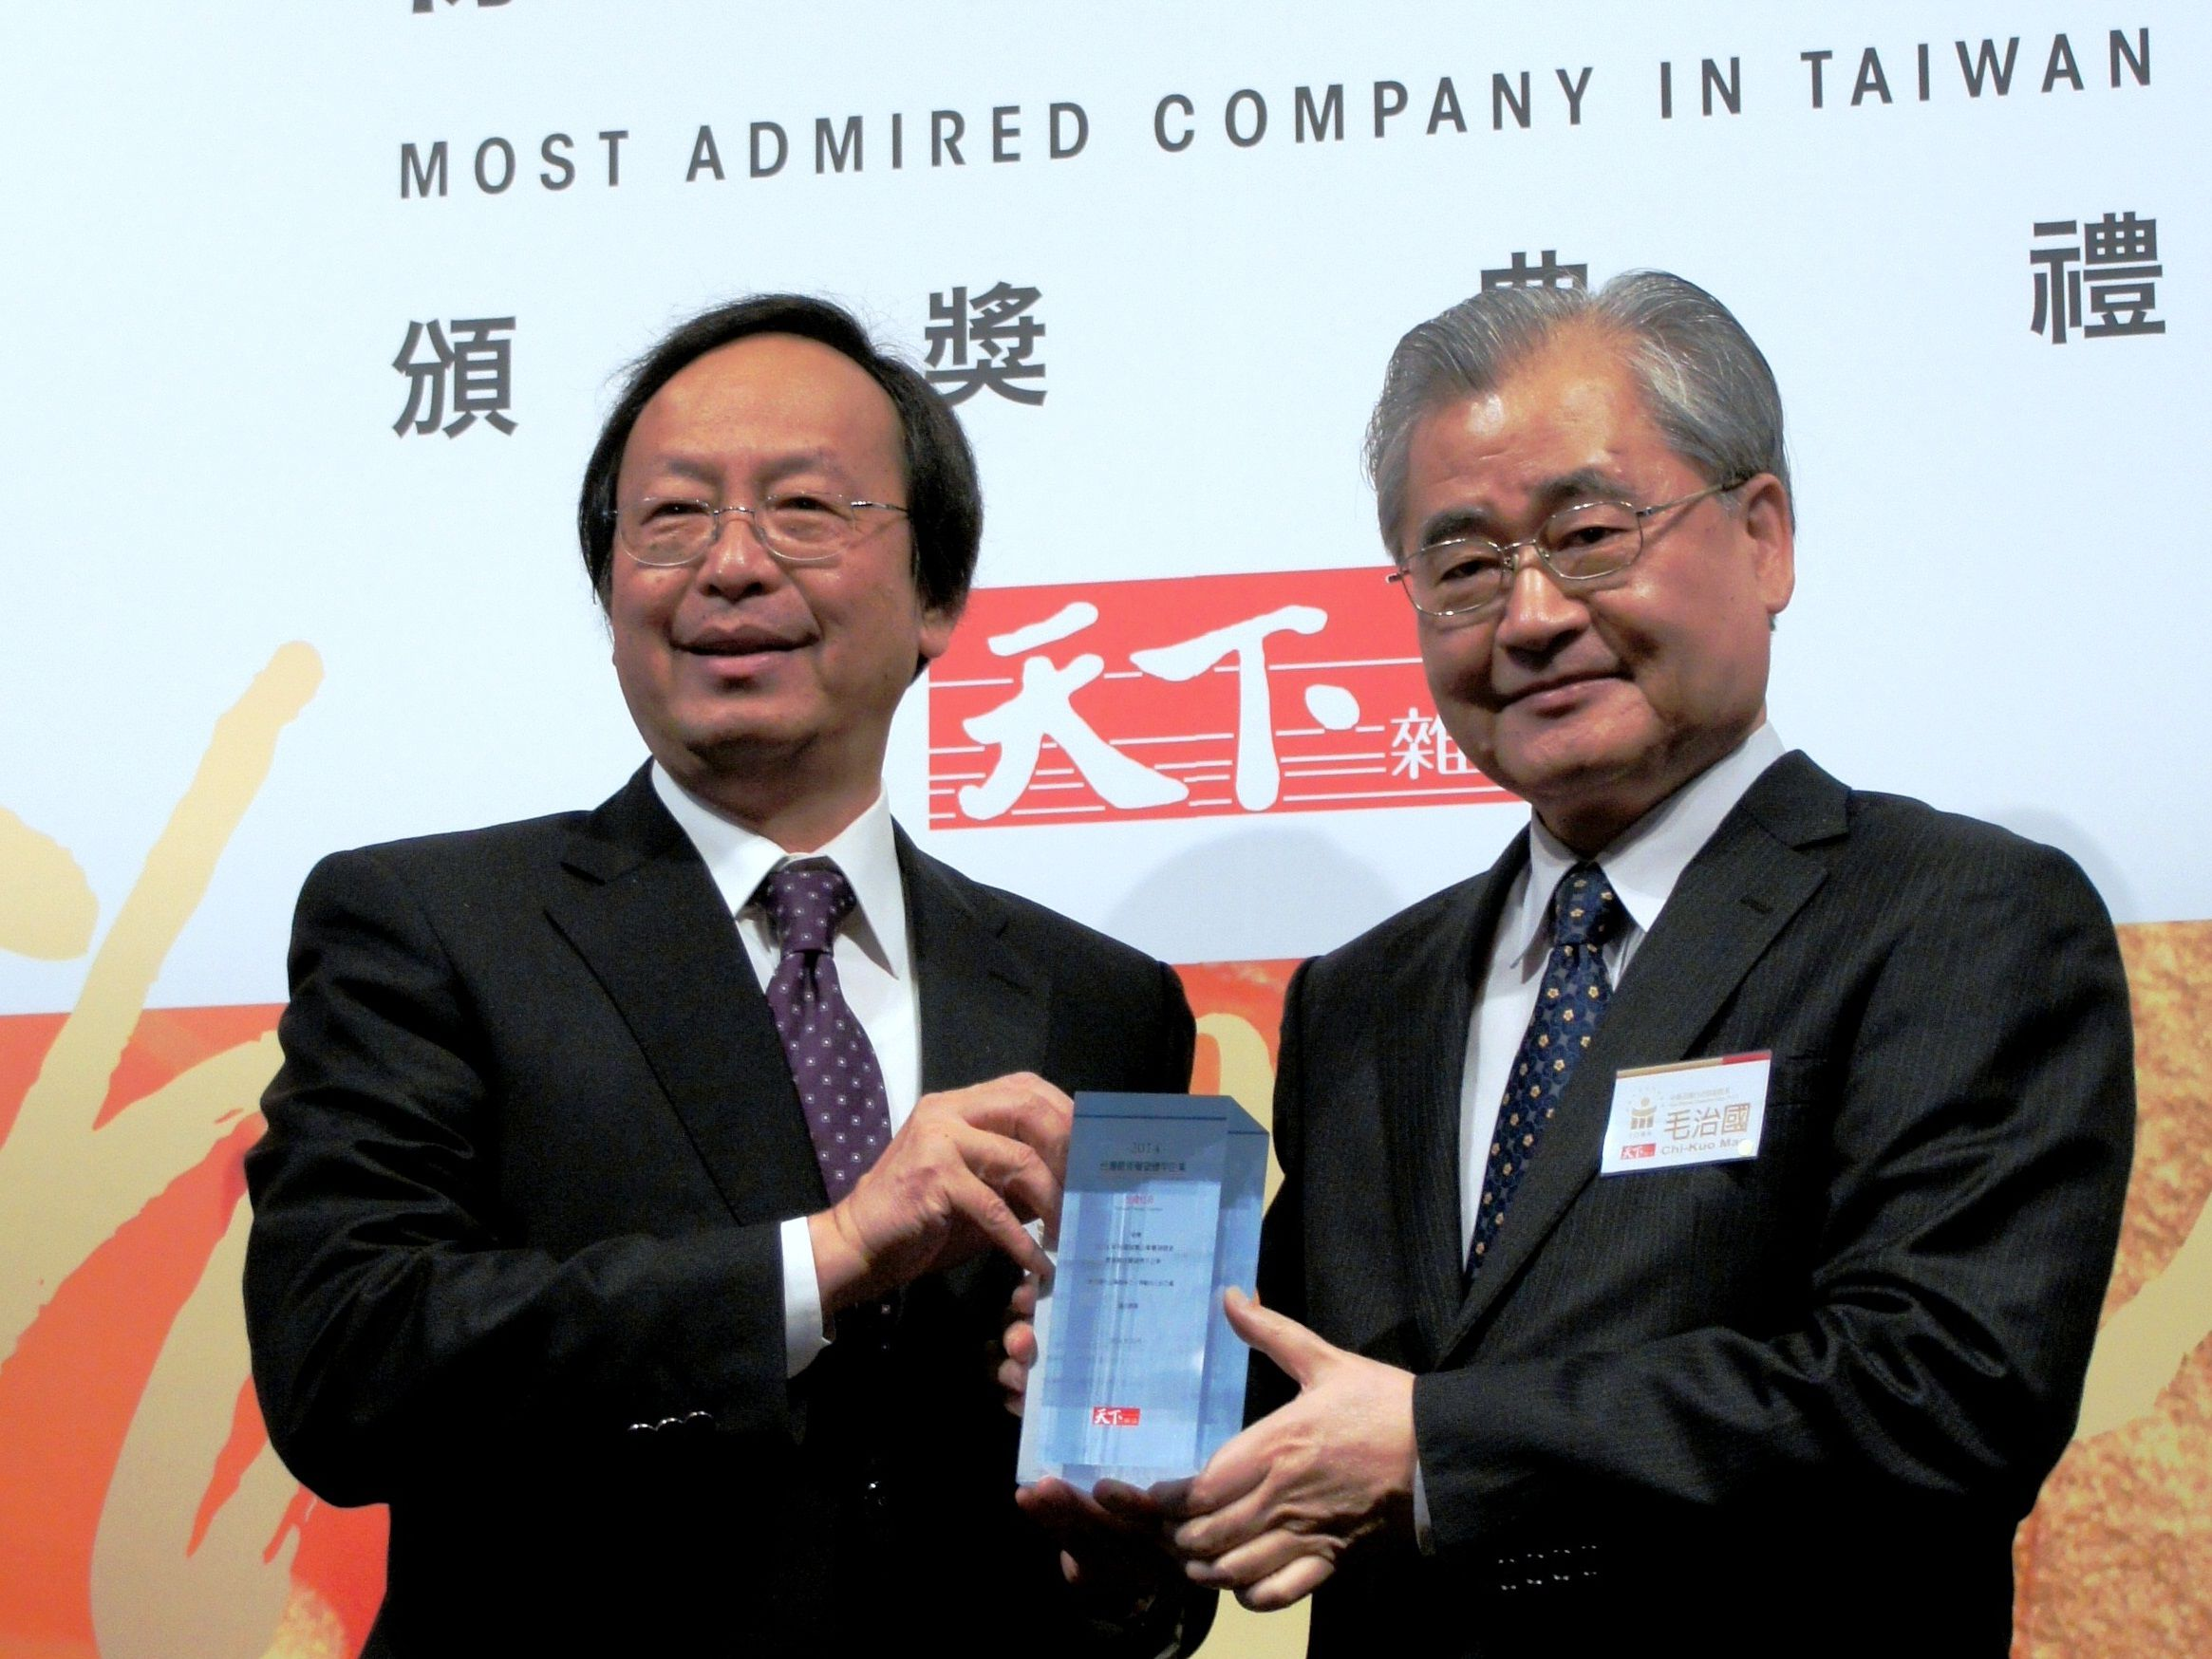 TW_Steve_Awarded_by_Mao_Chi_Kuo